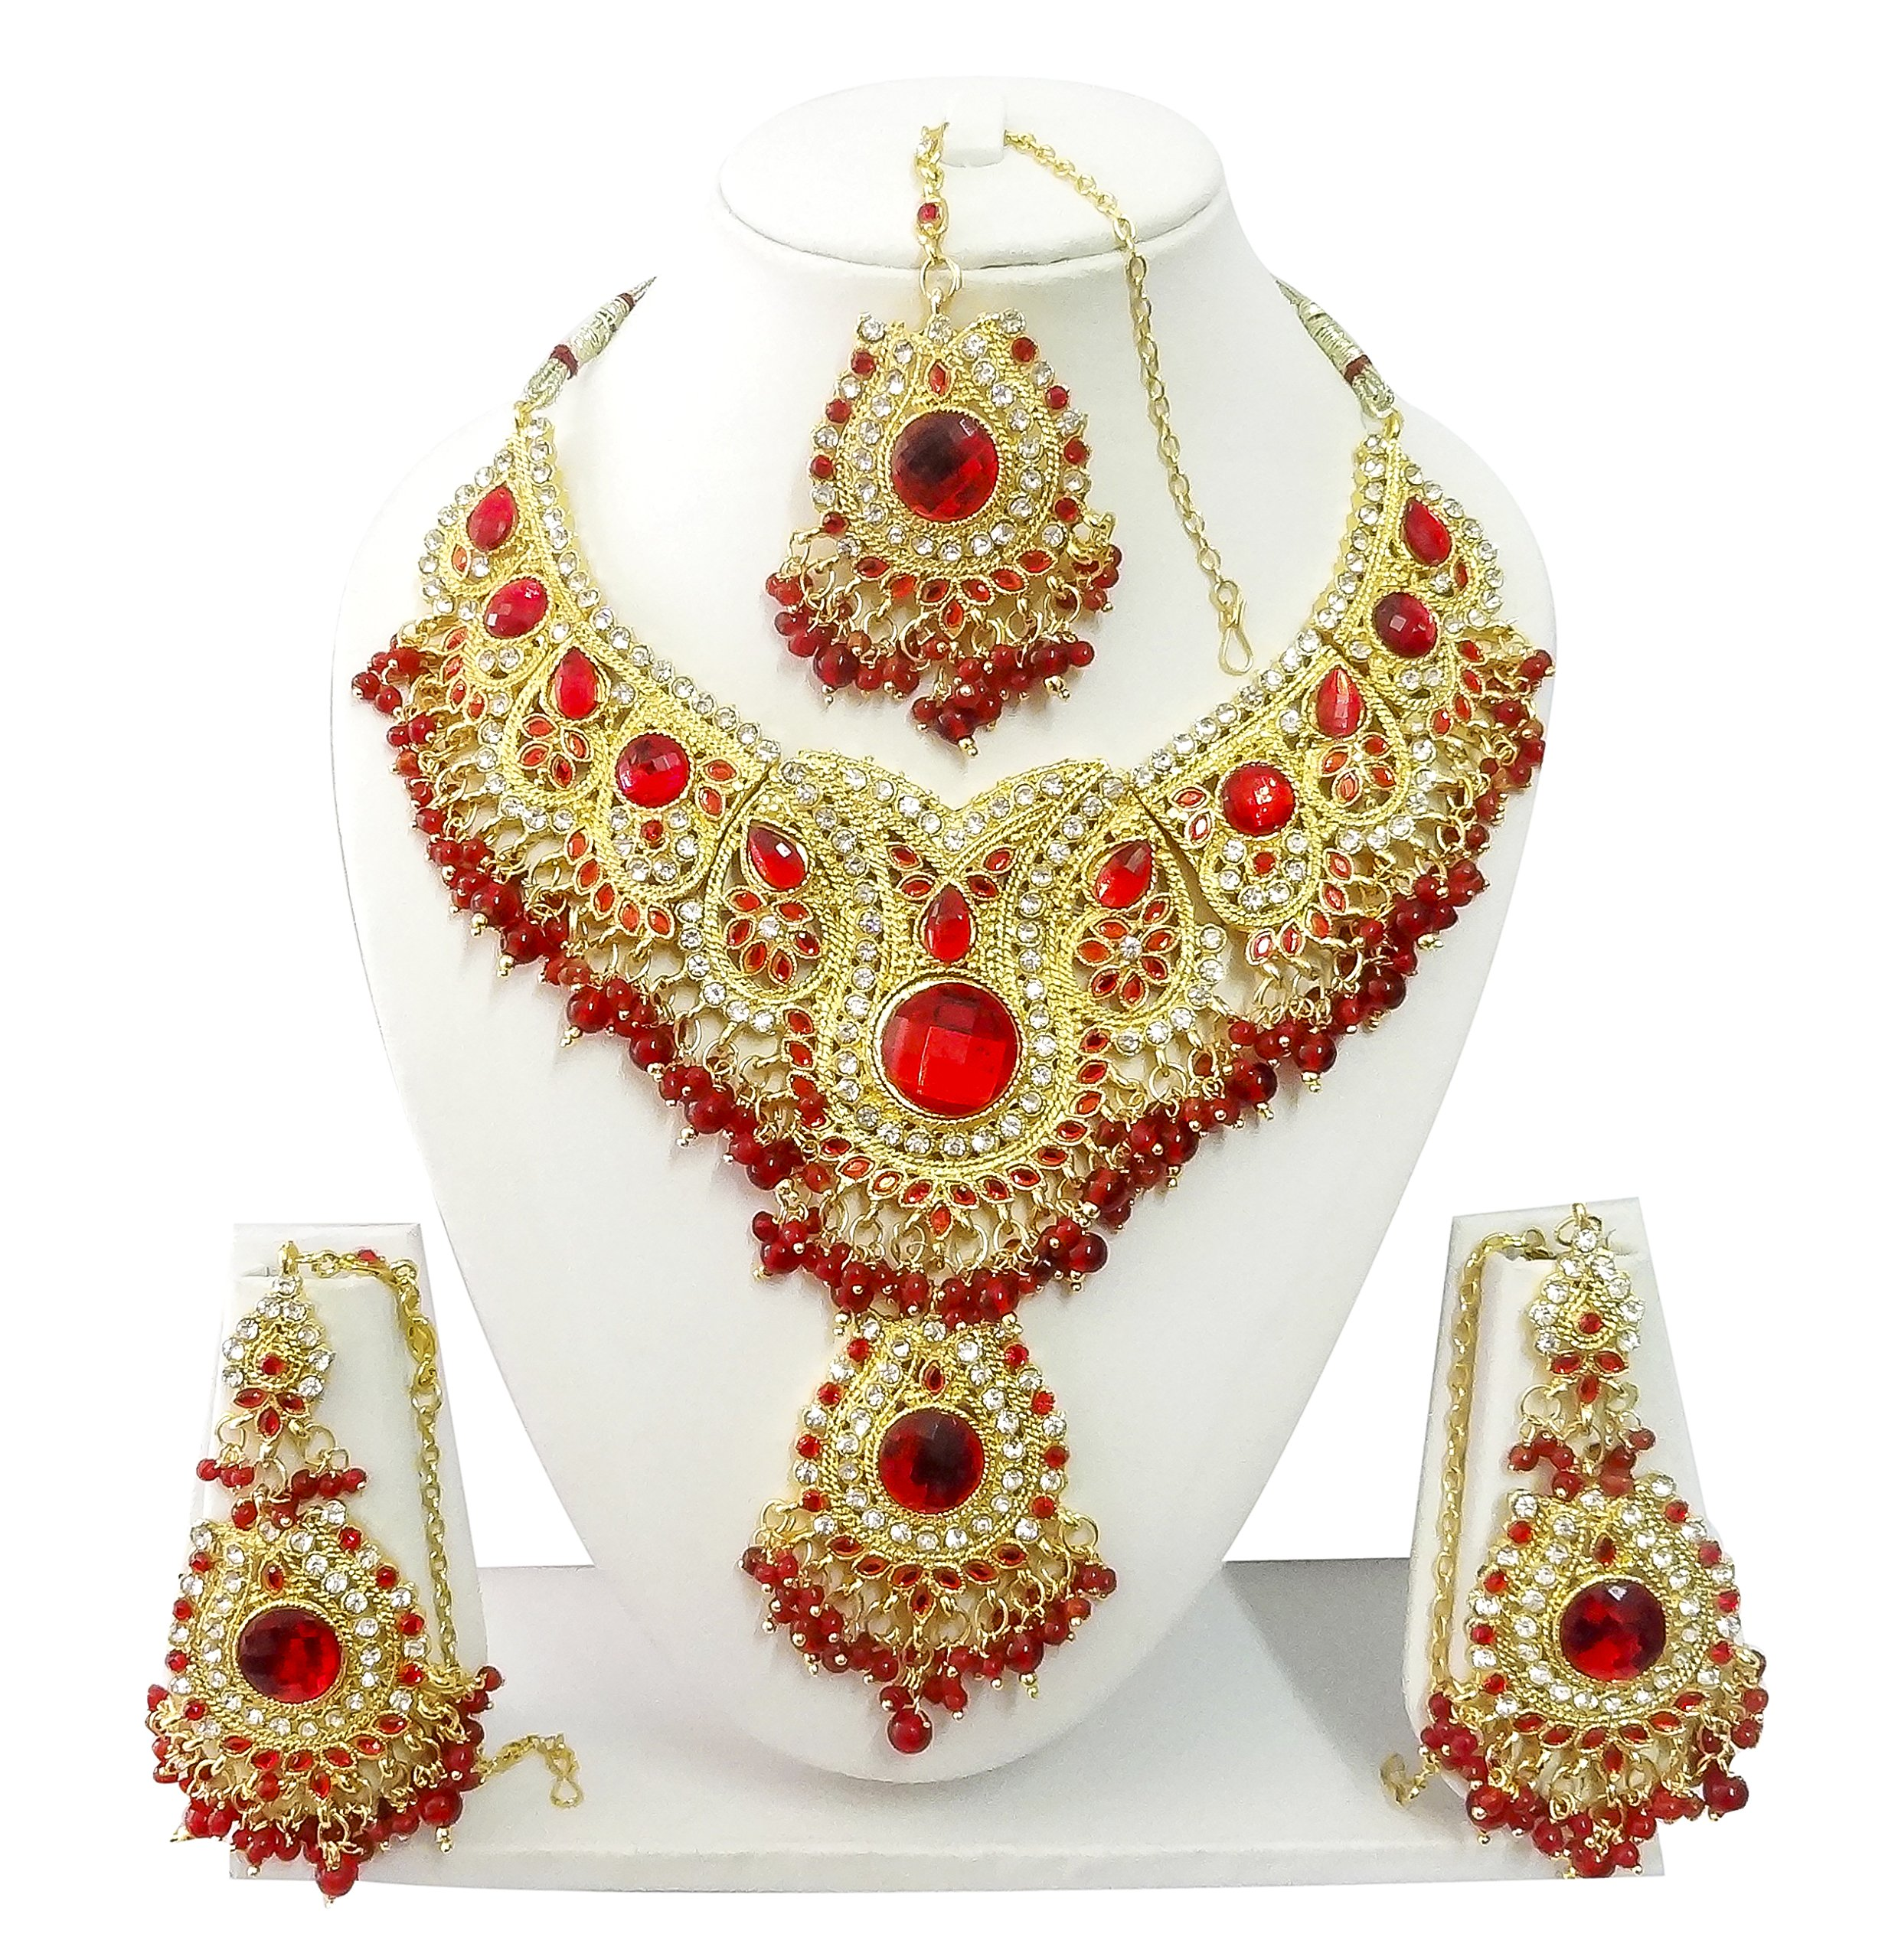 Exquisite Jewels Indian Bollywood Jewelry Set Ethnic Gold plated Necklace set with Earrings and Maang Tikka JS9003 Red